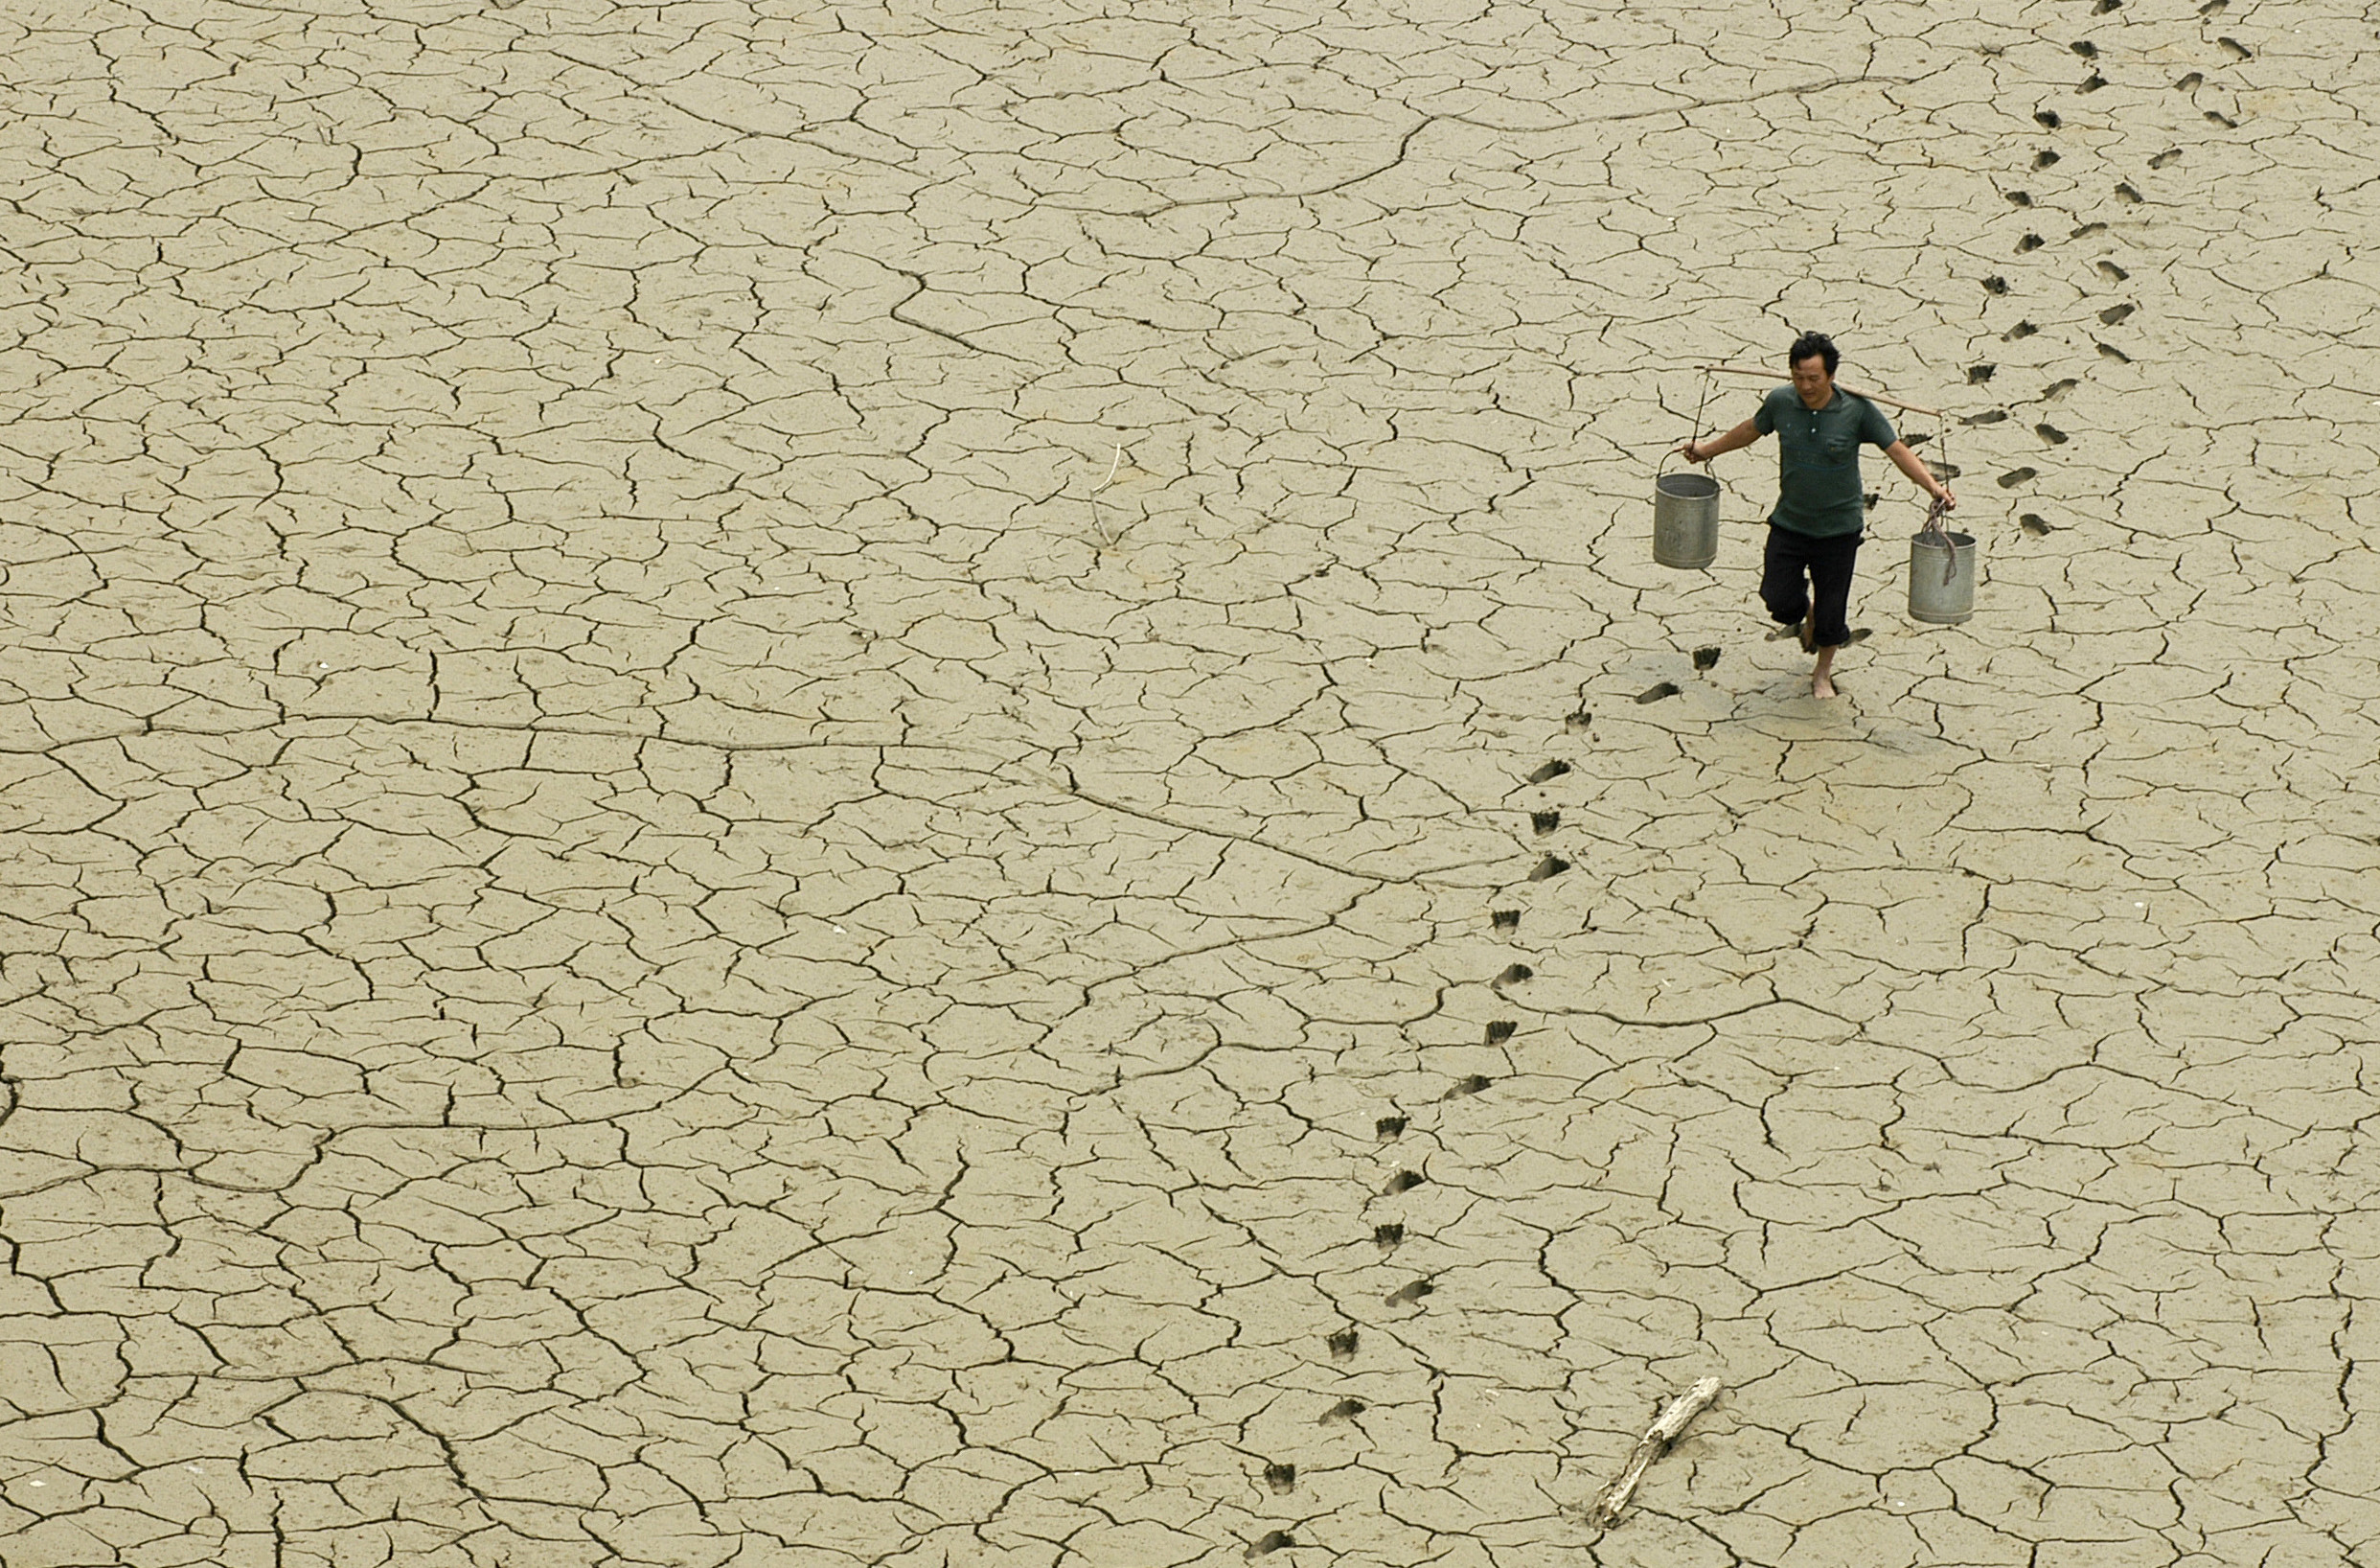 A farmer walks on a dried-up pond on the outskirts of Baokang, central China's Hubei province, June 10, 2007. REUTERS/Stringer (CHINA) CHINA OUT - GM1DVLKPZKAA